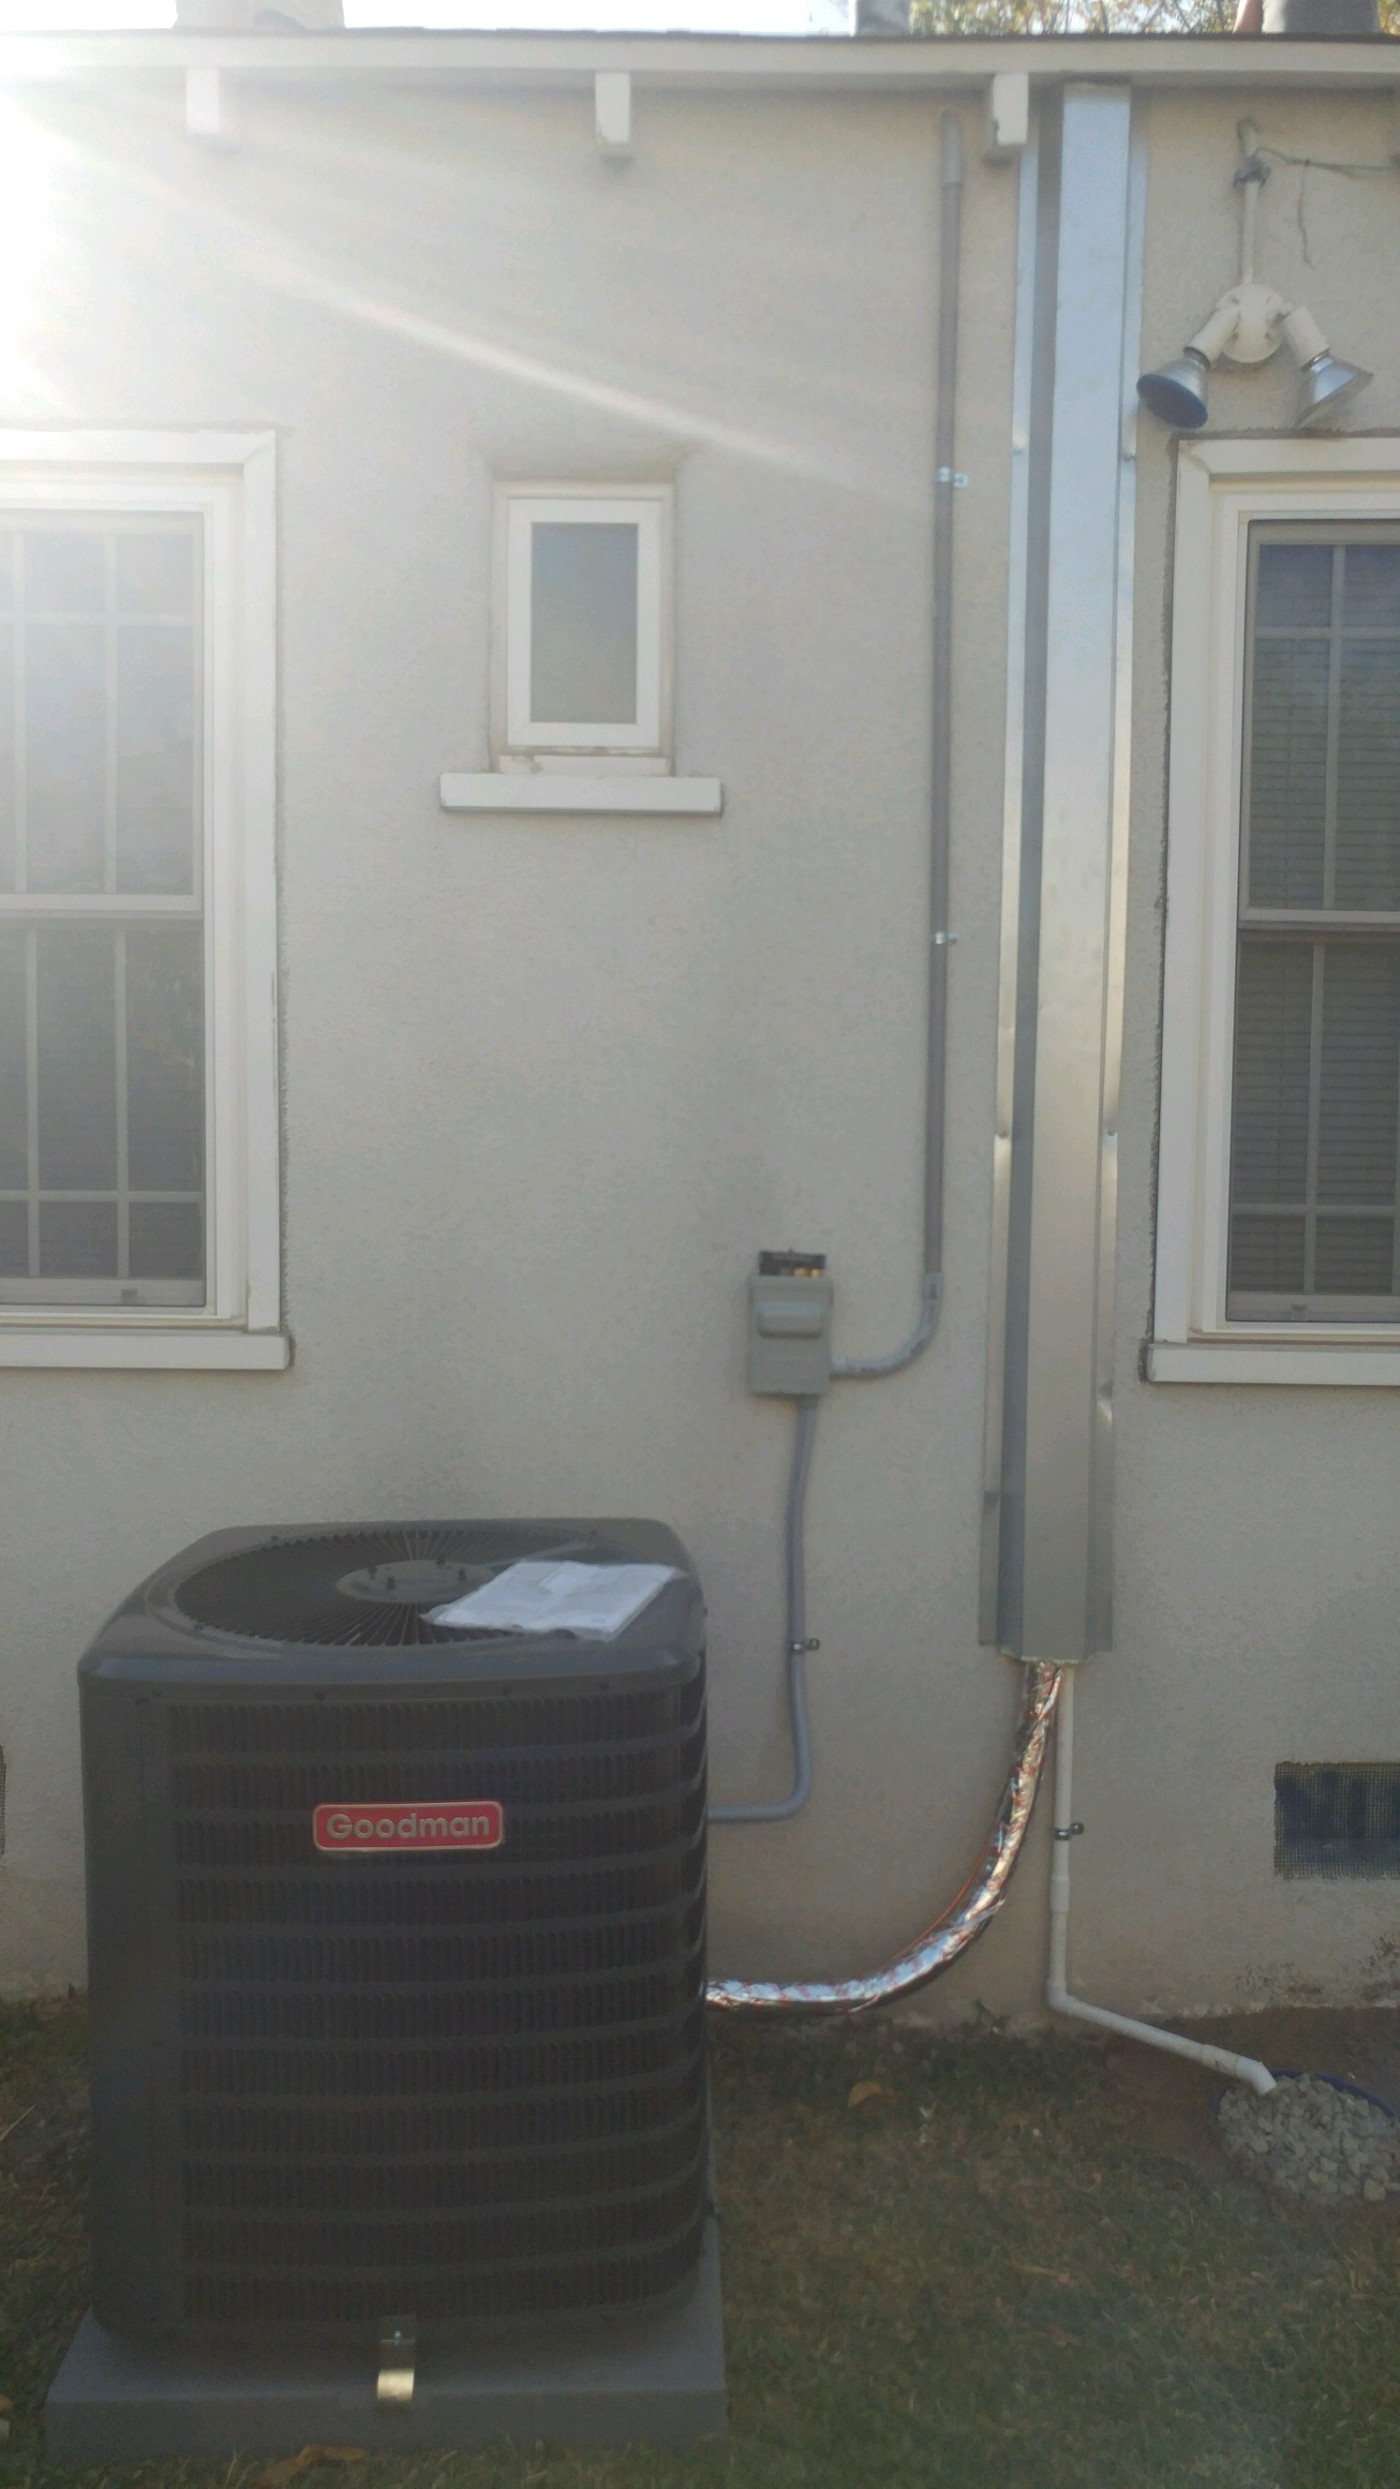 Aace's Heating, Air Conditioning image 4